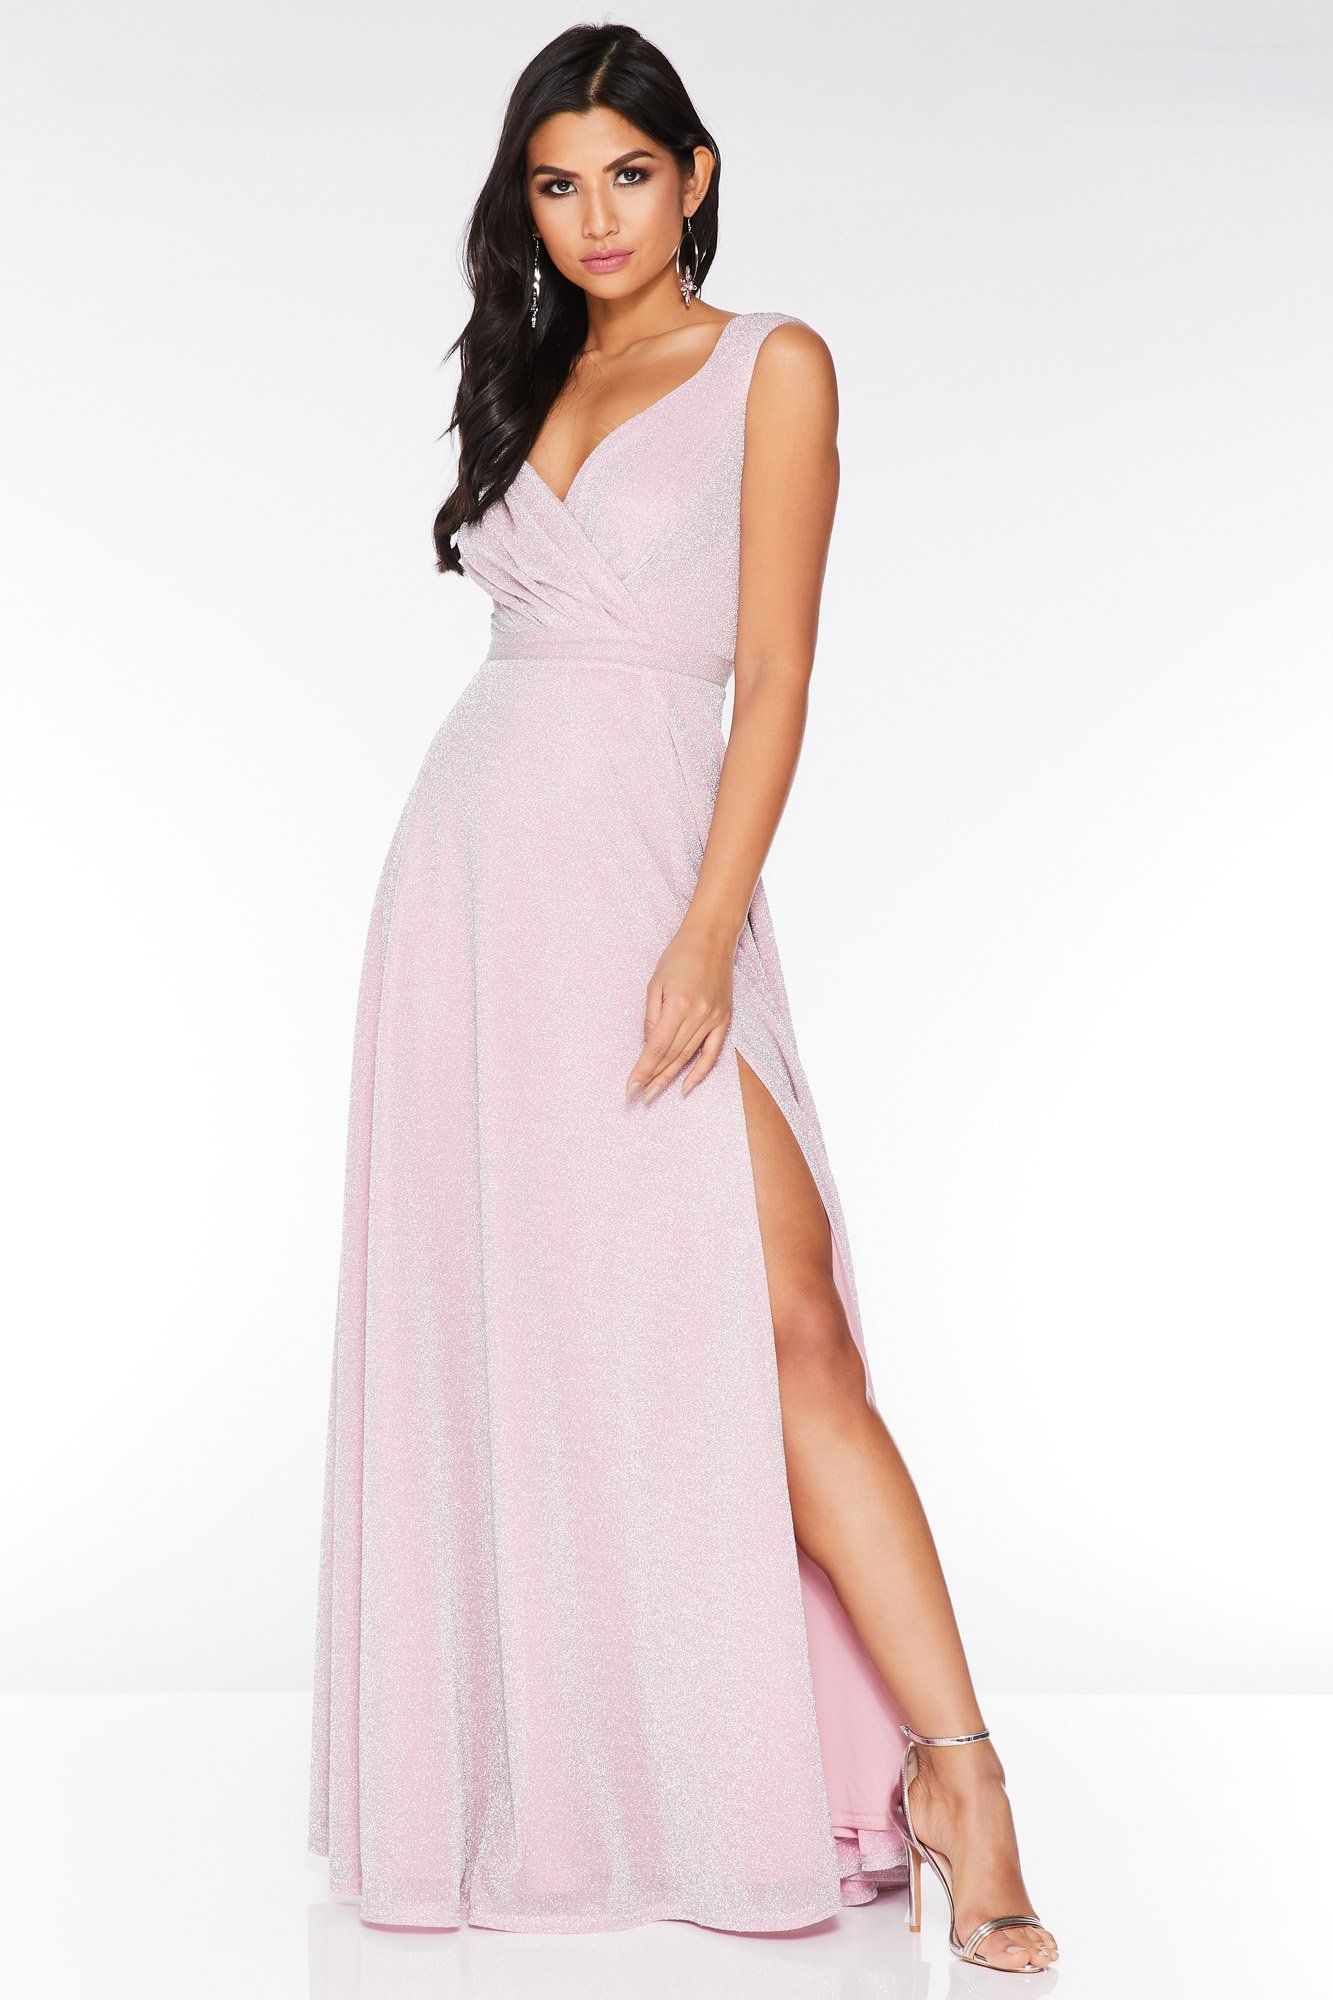 015a1f7997 Blush Pink Glitter Wrap Sleeveless Maxi Dress - Quiz Clothing